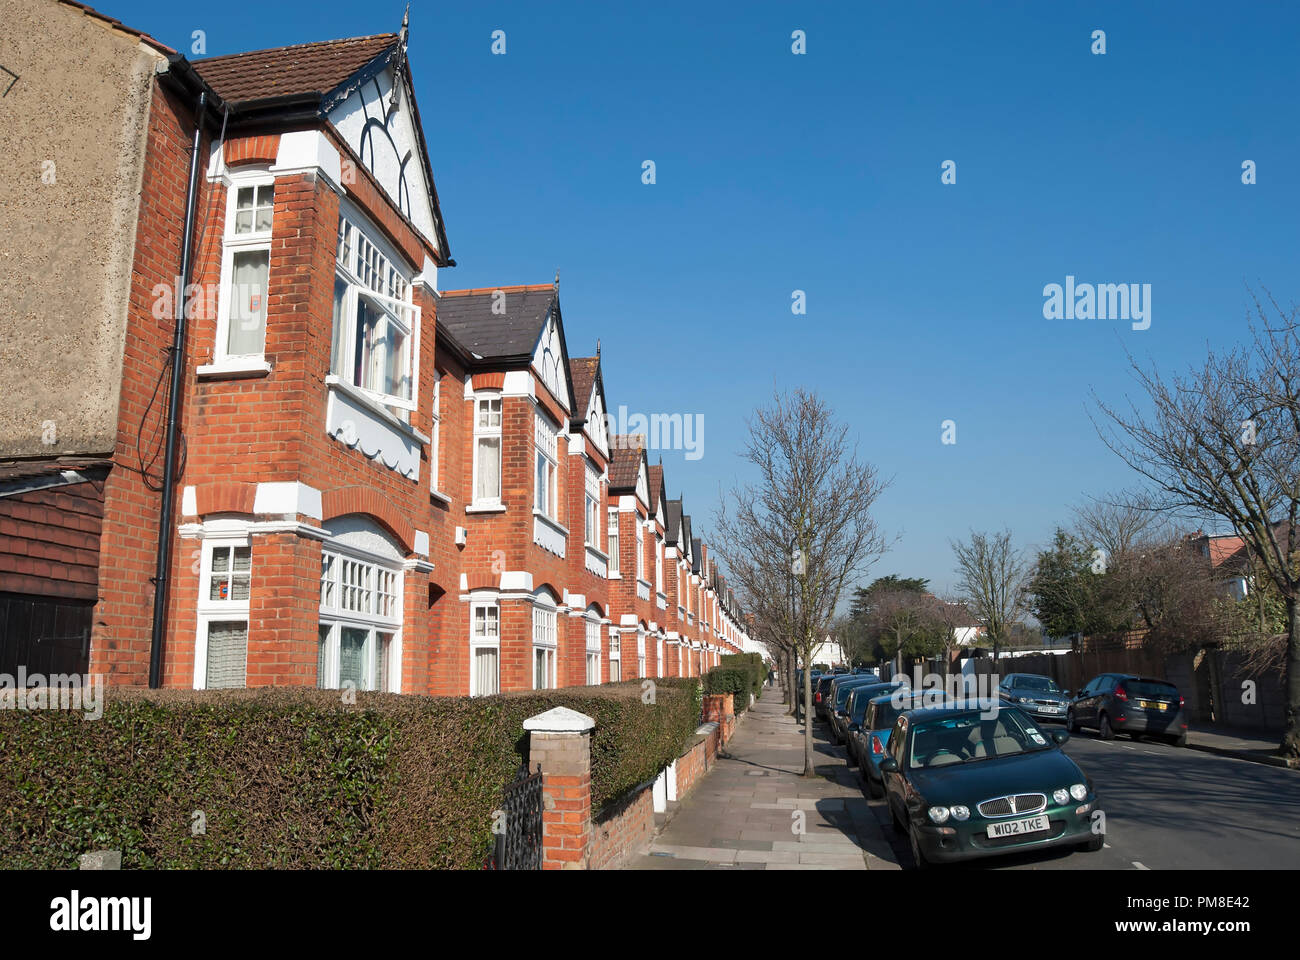 bay fronted victorian houses in bedford park, chiswick, london, england Stock Photo